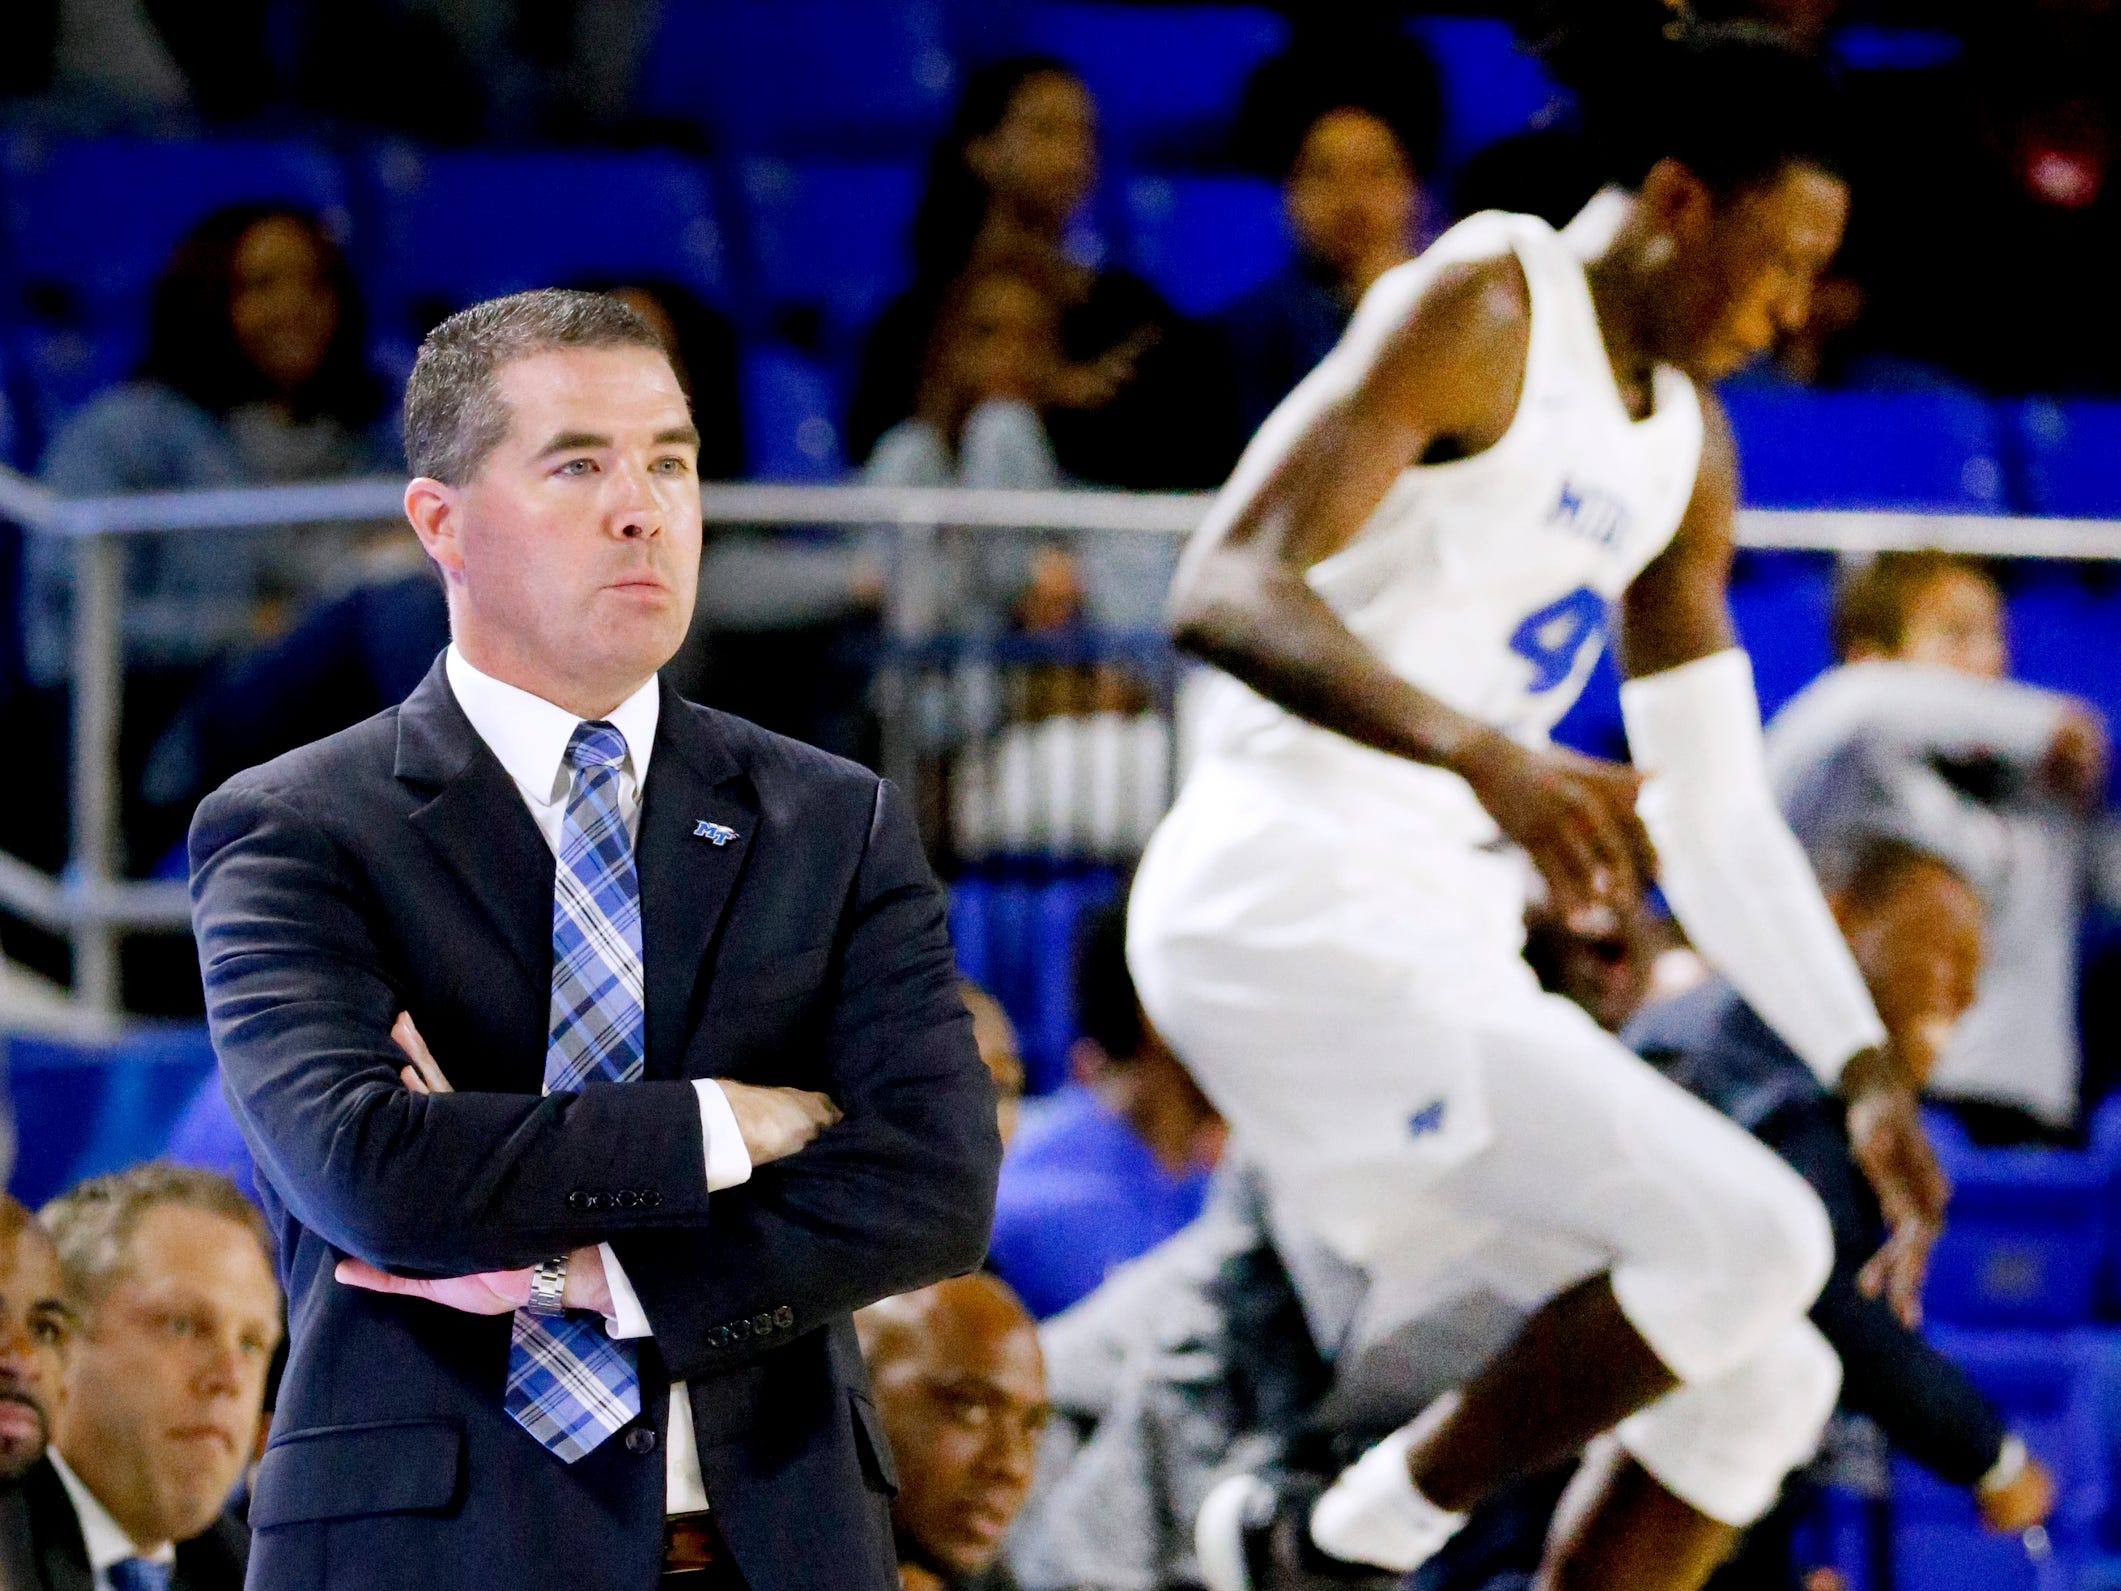 MTSU's head coach Nick McDevitt reacts after they score against Lees-McRae as MTSU's James Hawthorne (4) reacts in the background on the sidelines during the opening game of the season, on Tuesday, Nov. 6, 2018.